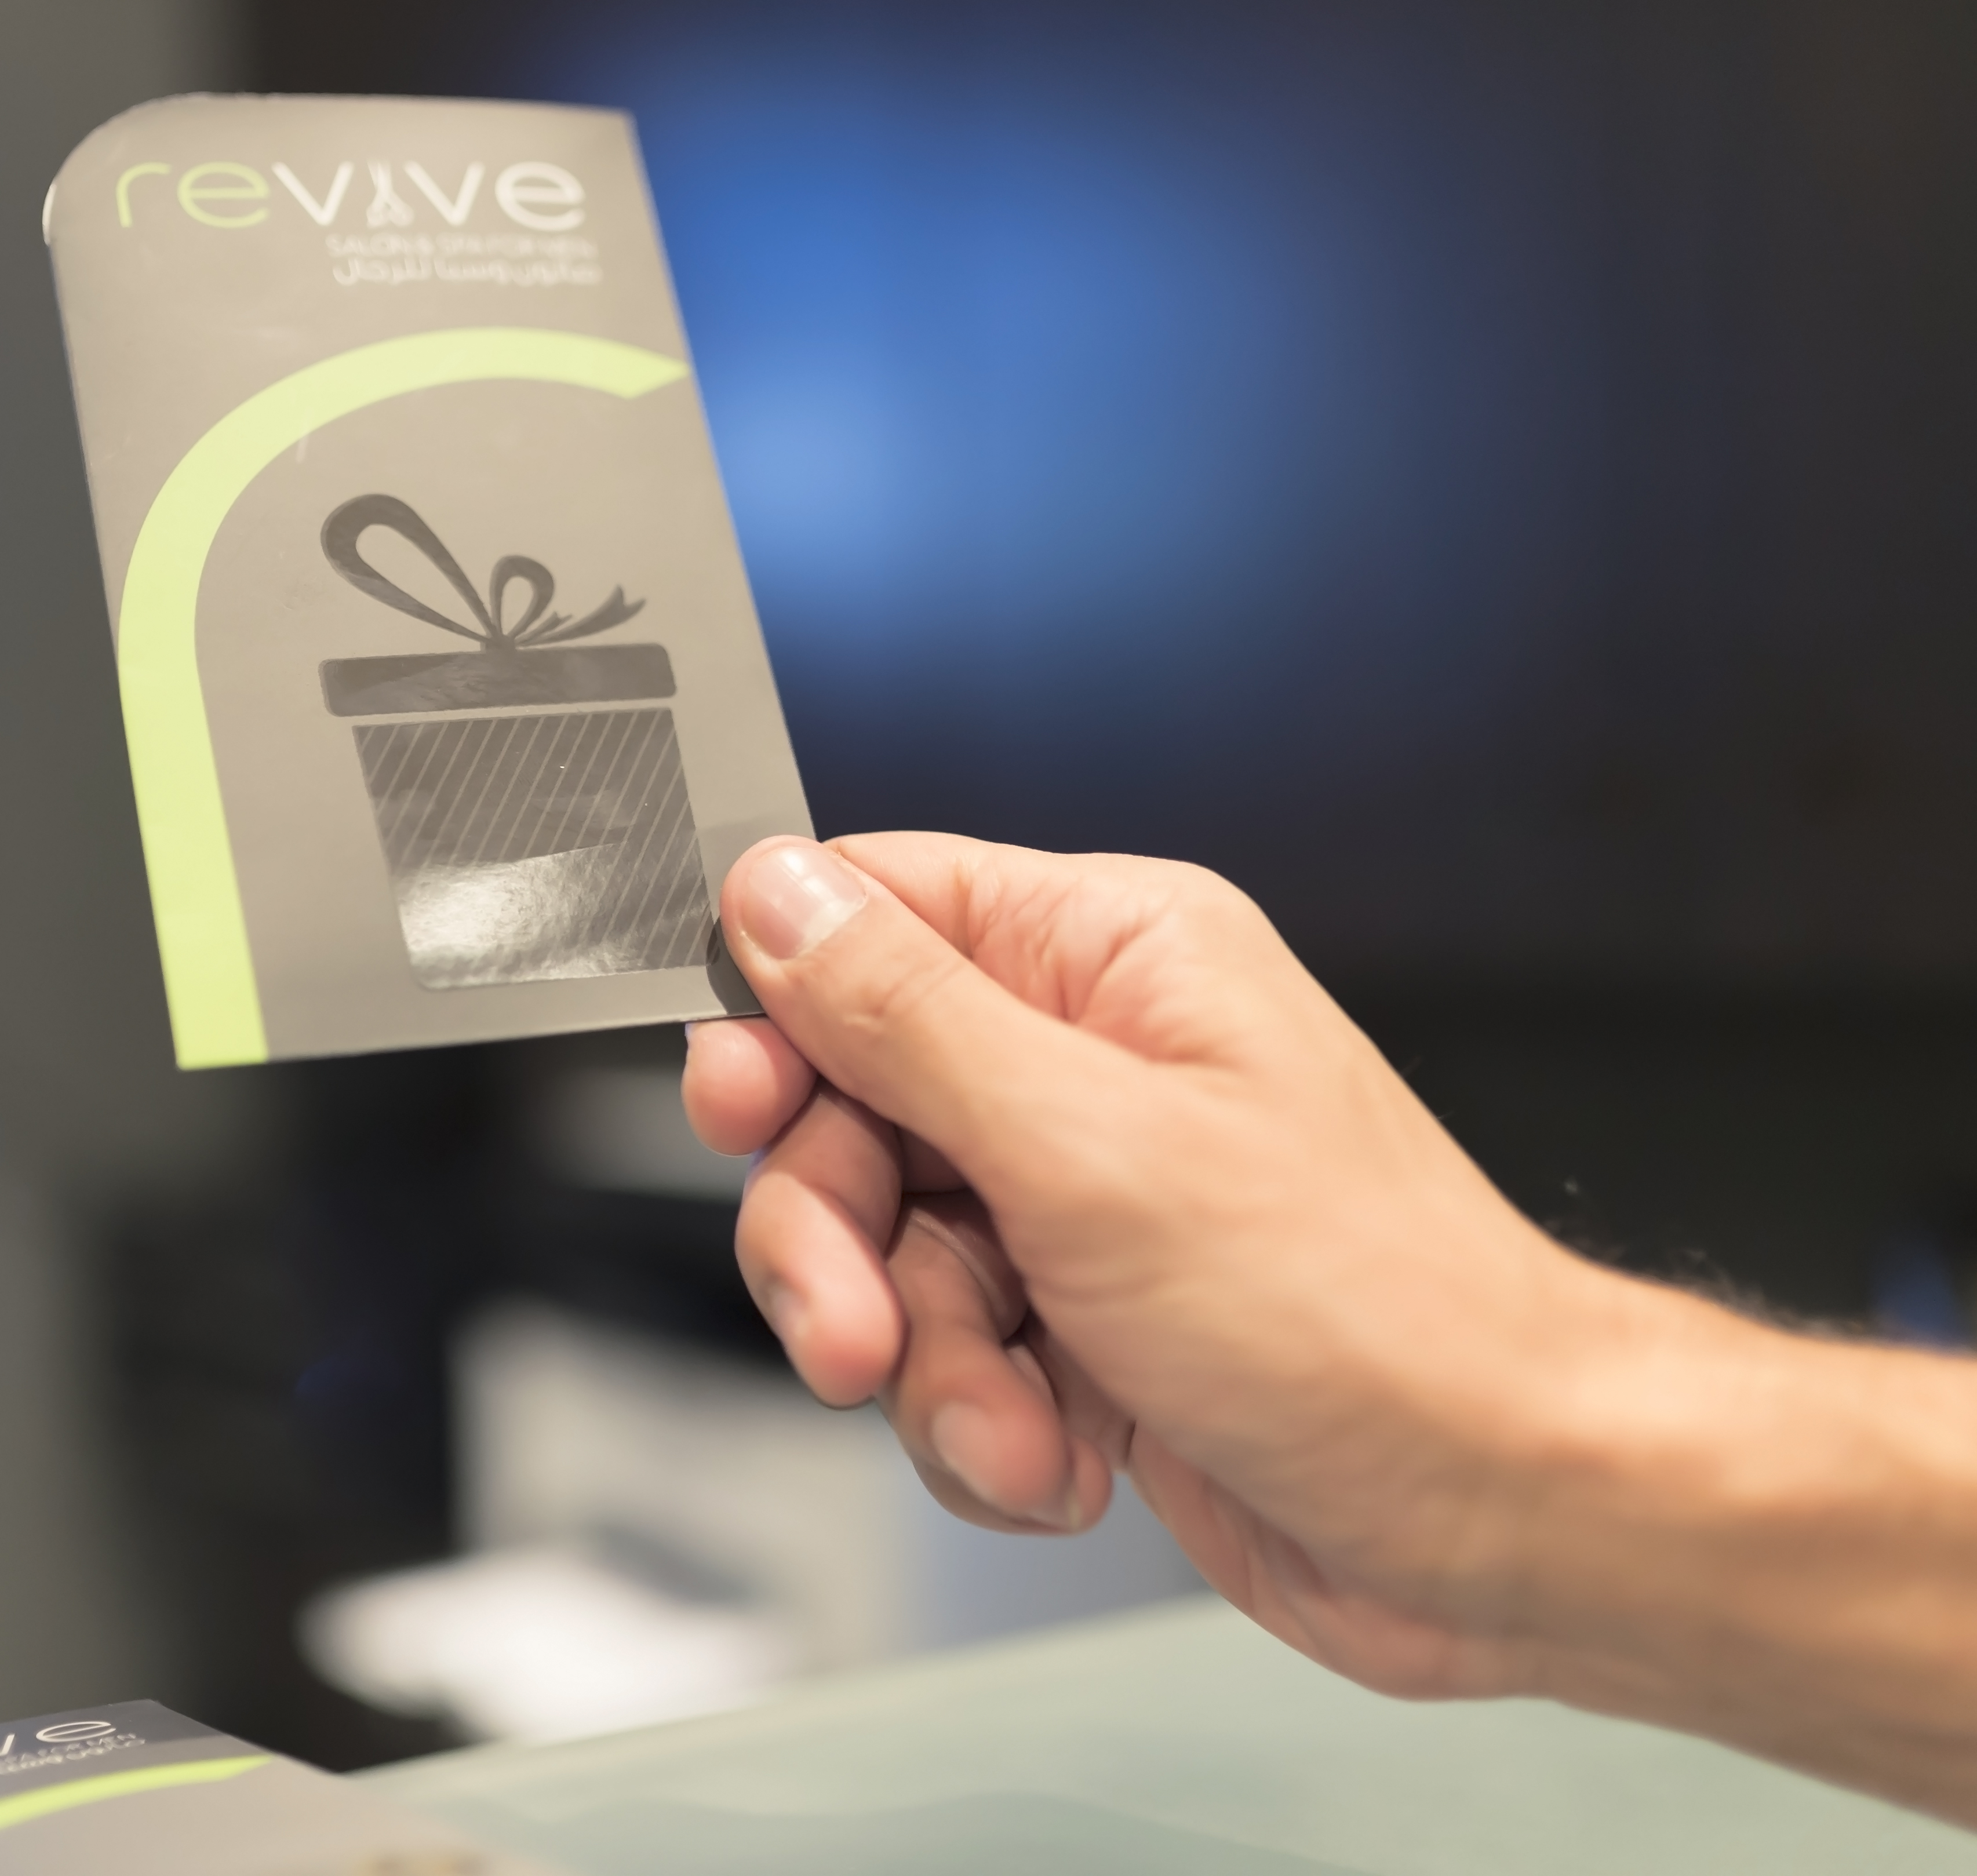 Revive Salon & Spa gift card